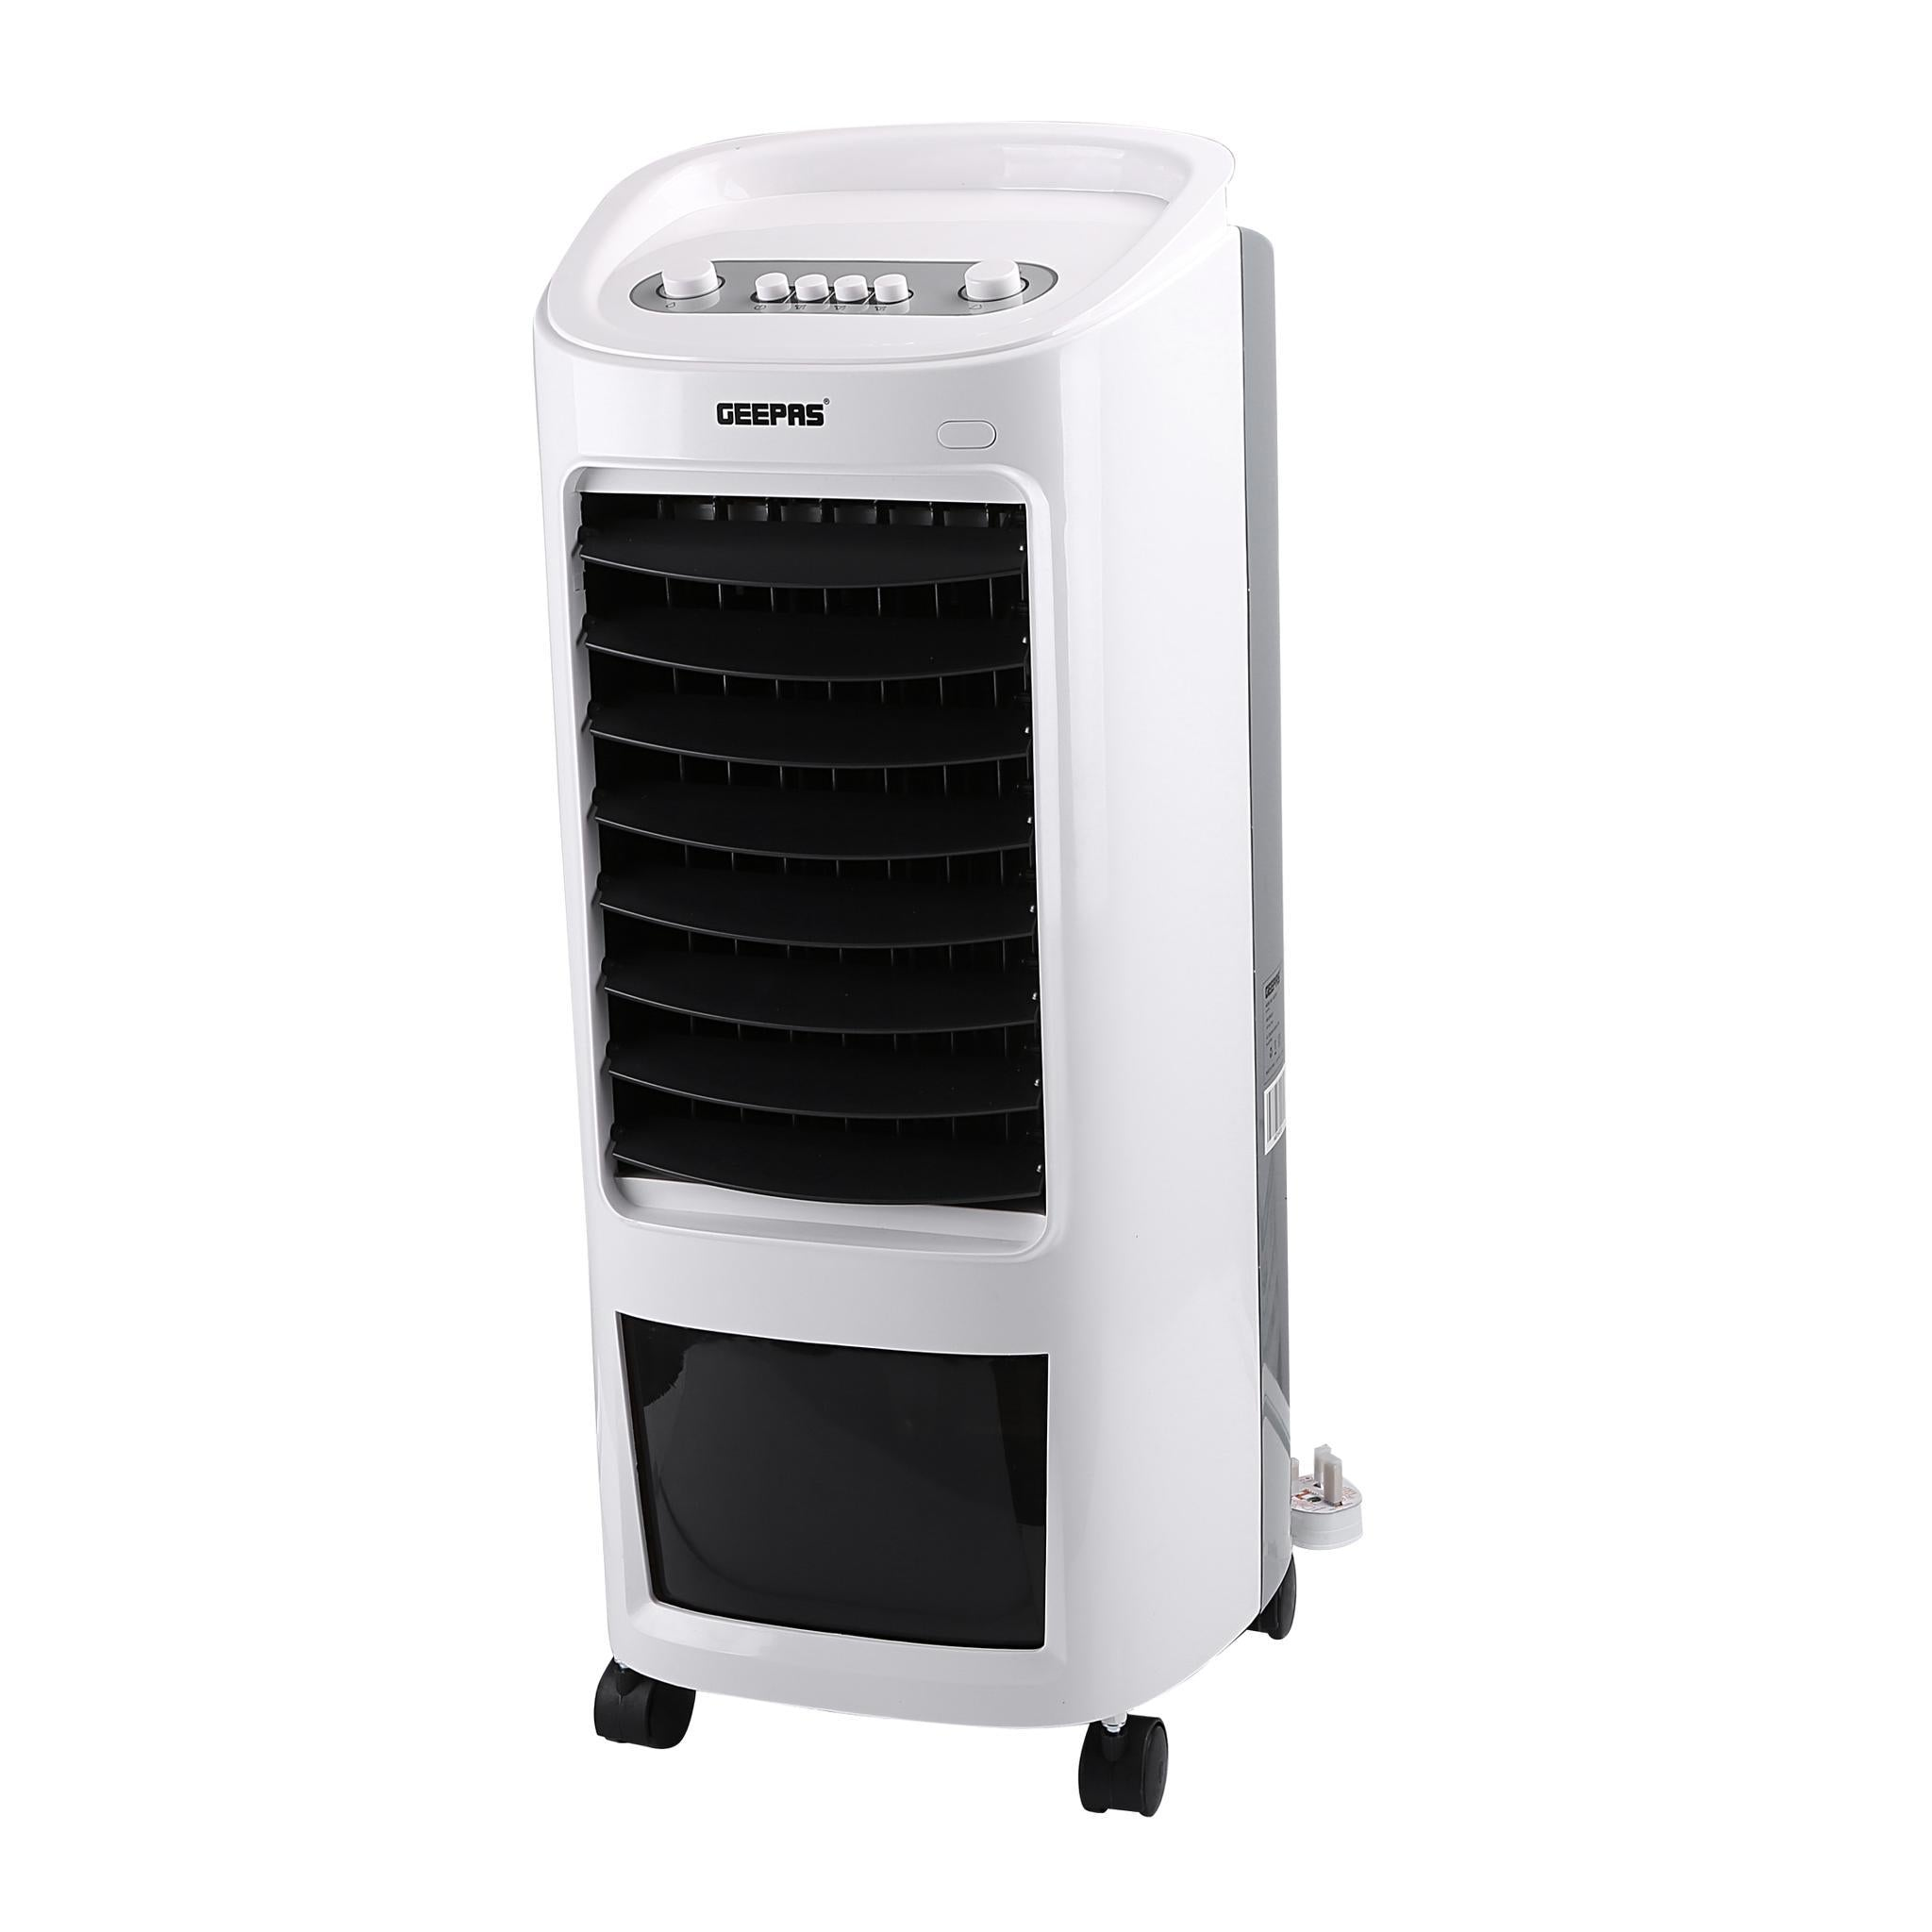 Geepas Air Cooler 7L 3 Speed Honey Comb Cooling 1x1 - White,GAC9576 - 2071MALL